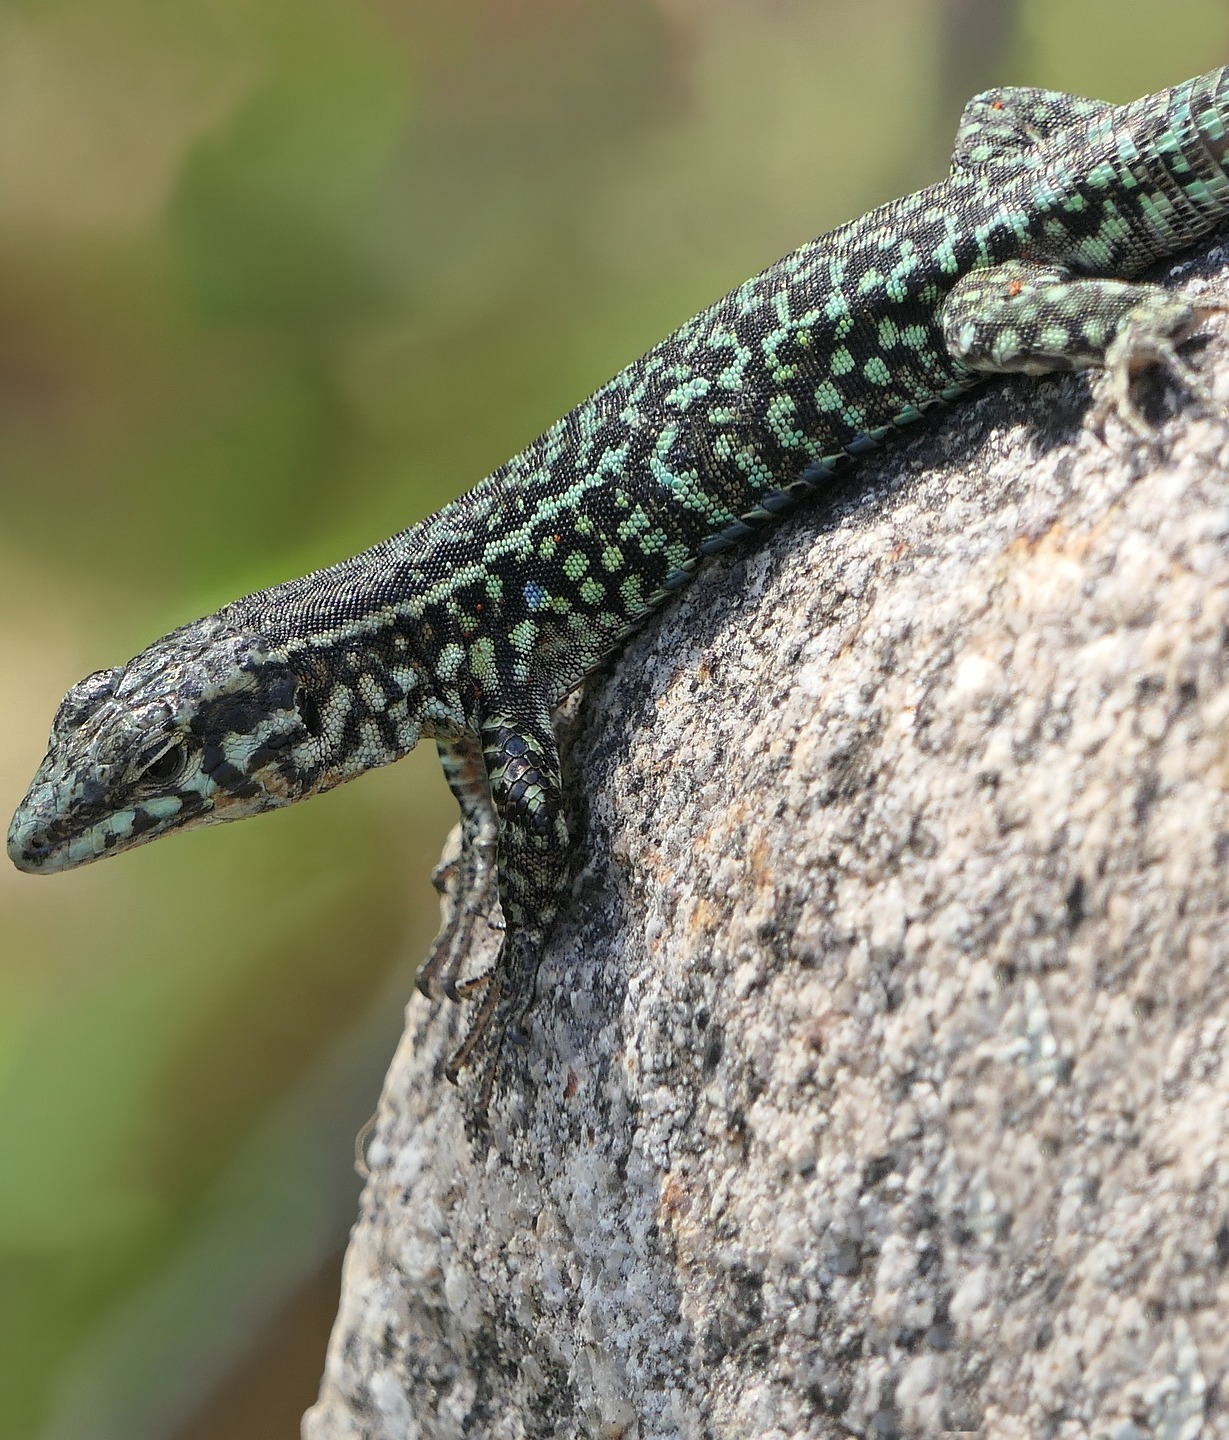 Picture of a green lizard.